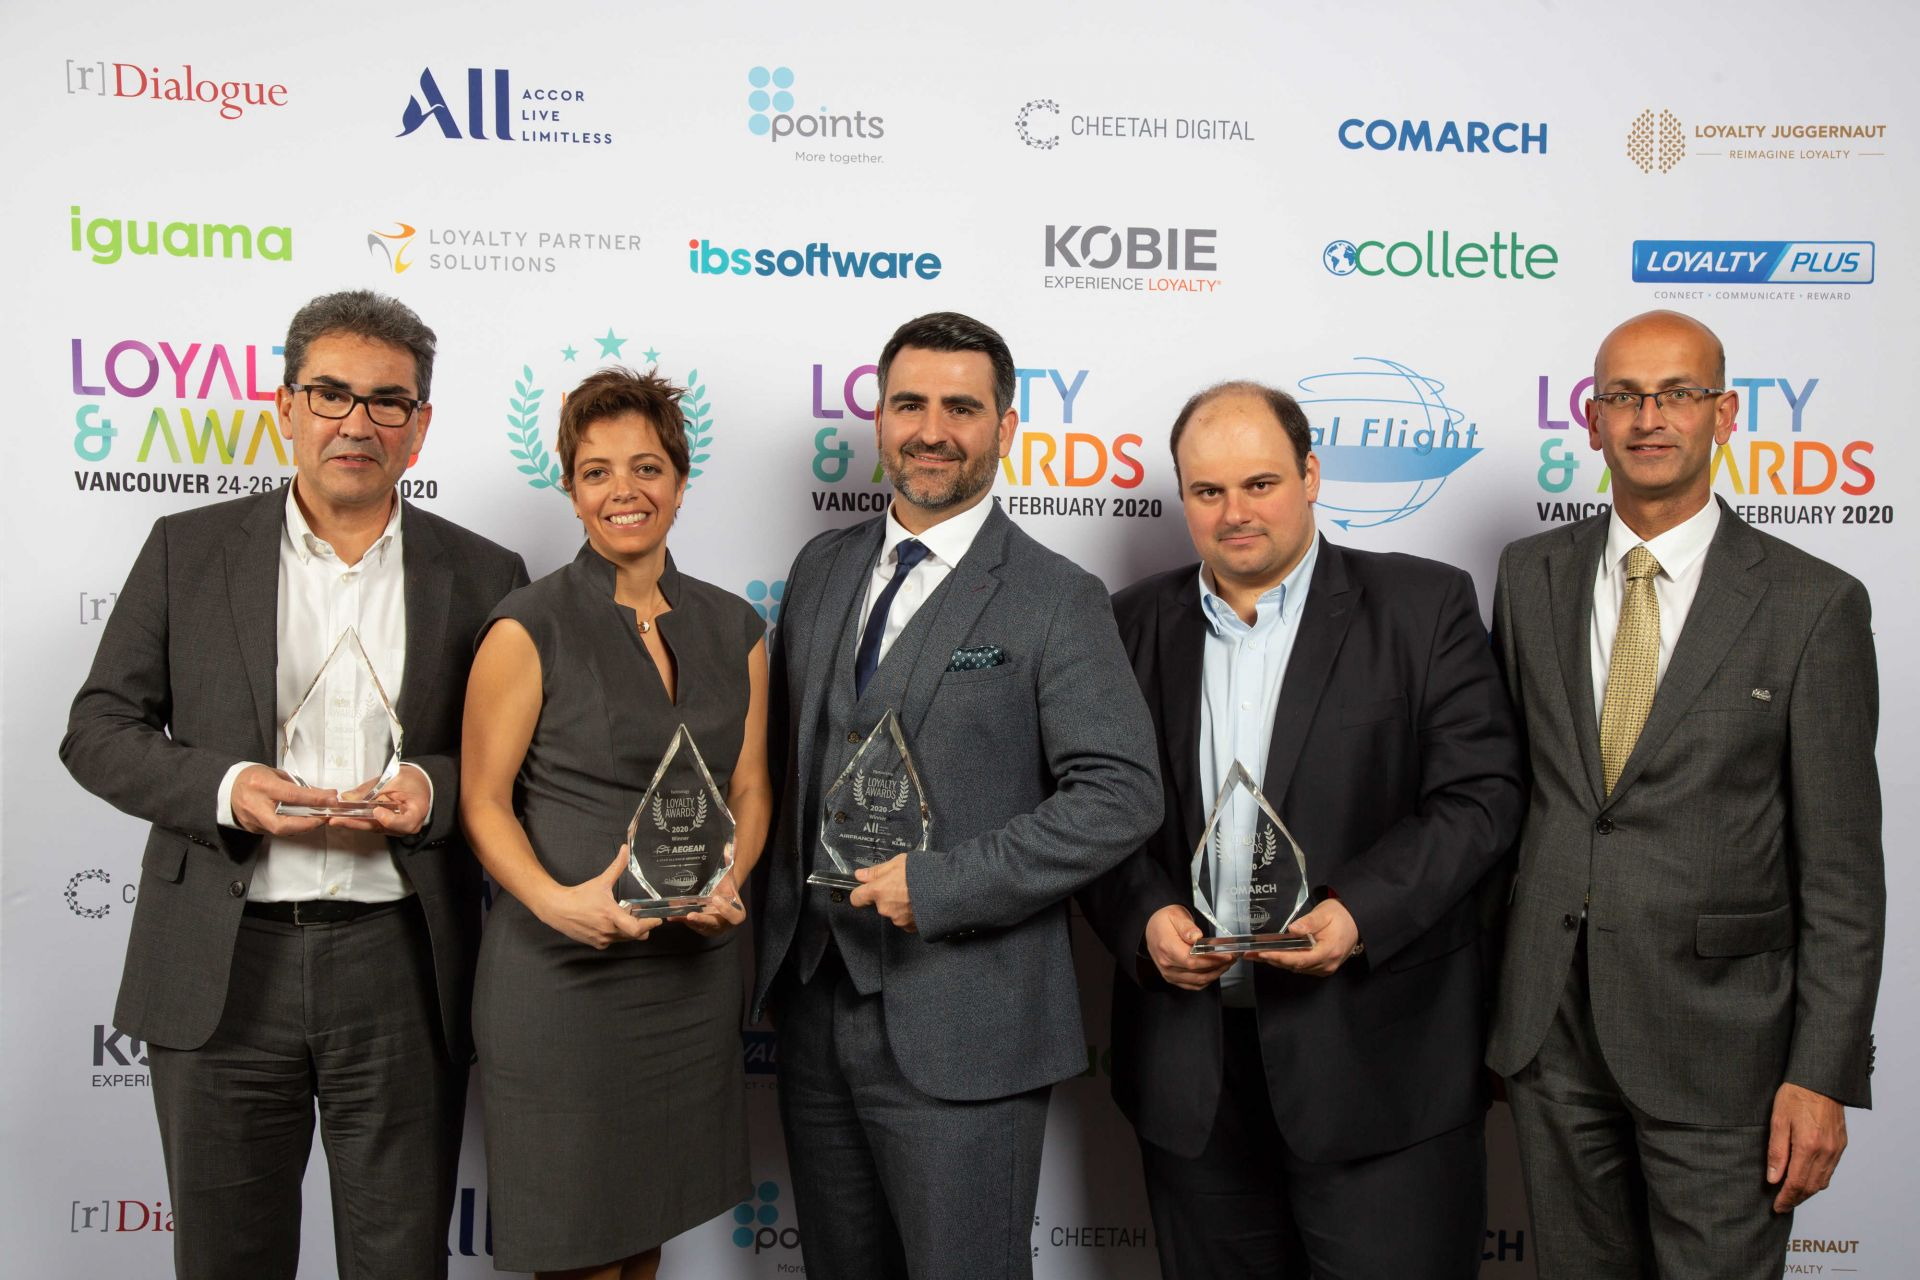 Loyalty&Awards 2020 winners comarch